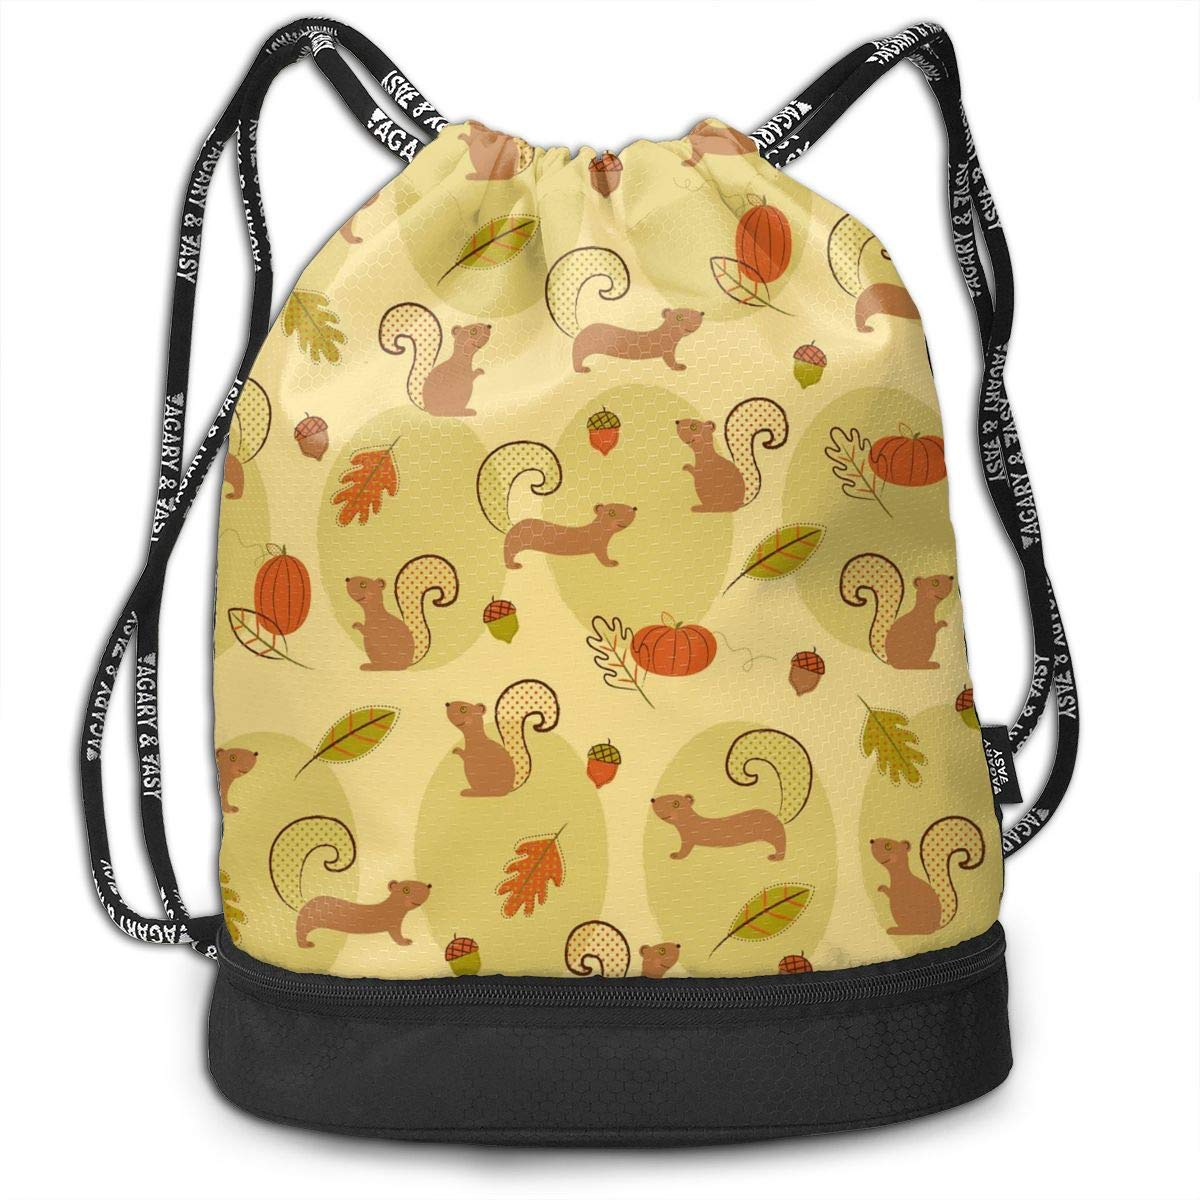 Vintage Sea Turtle Illustration Drawstring Bag For Girls /& Boys Gym Yoga Runner Sports Daypack Portable Bundle Backpack